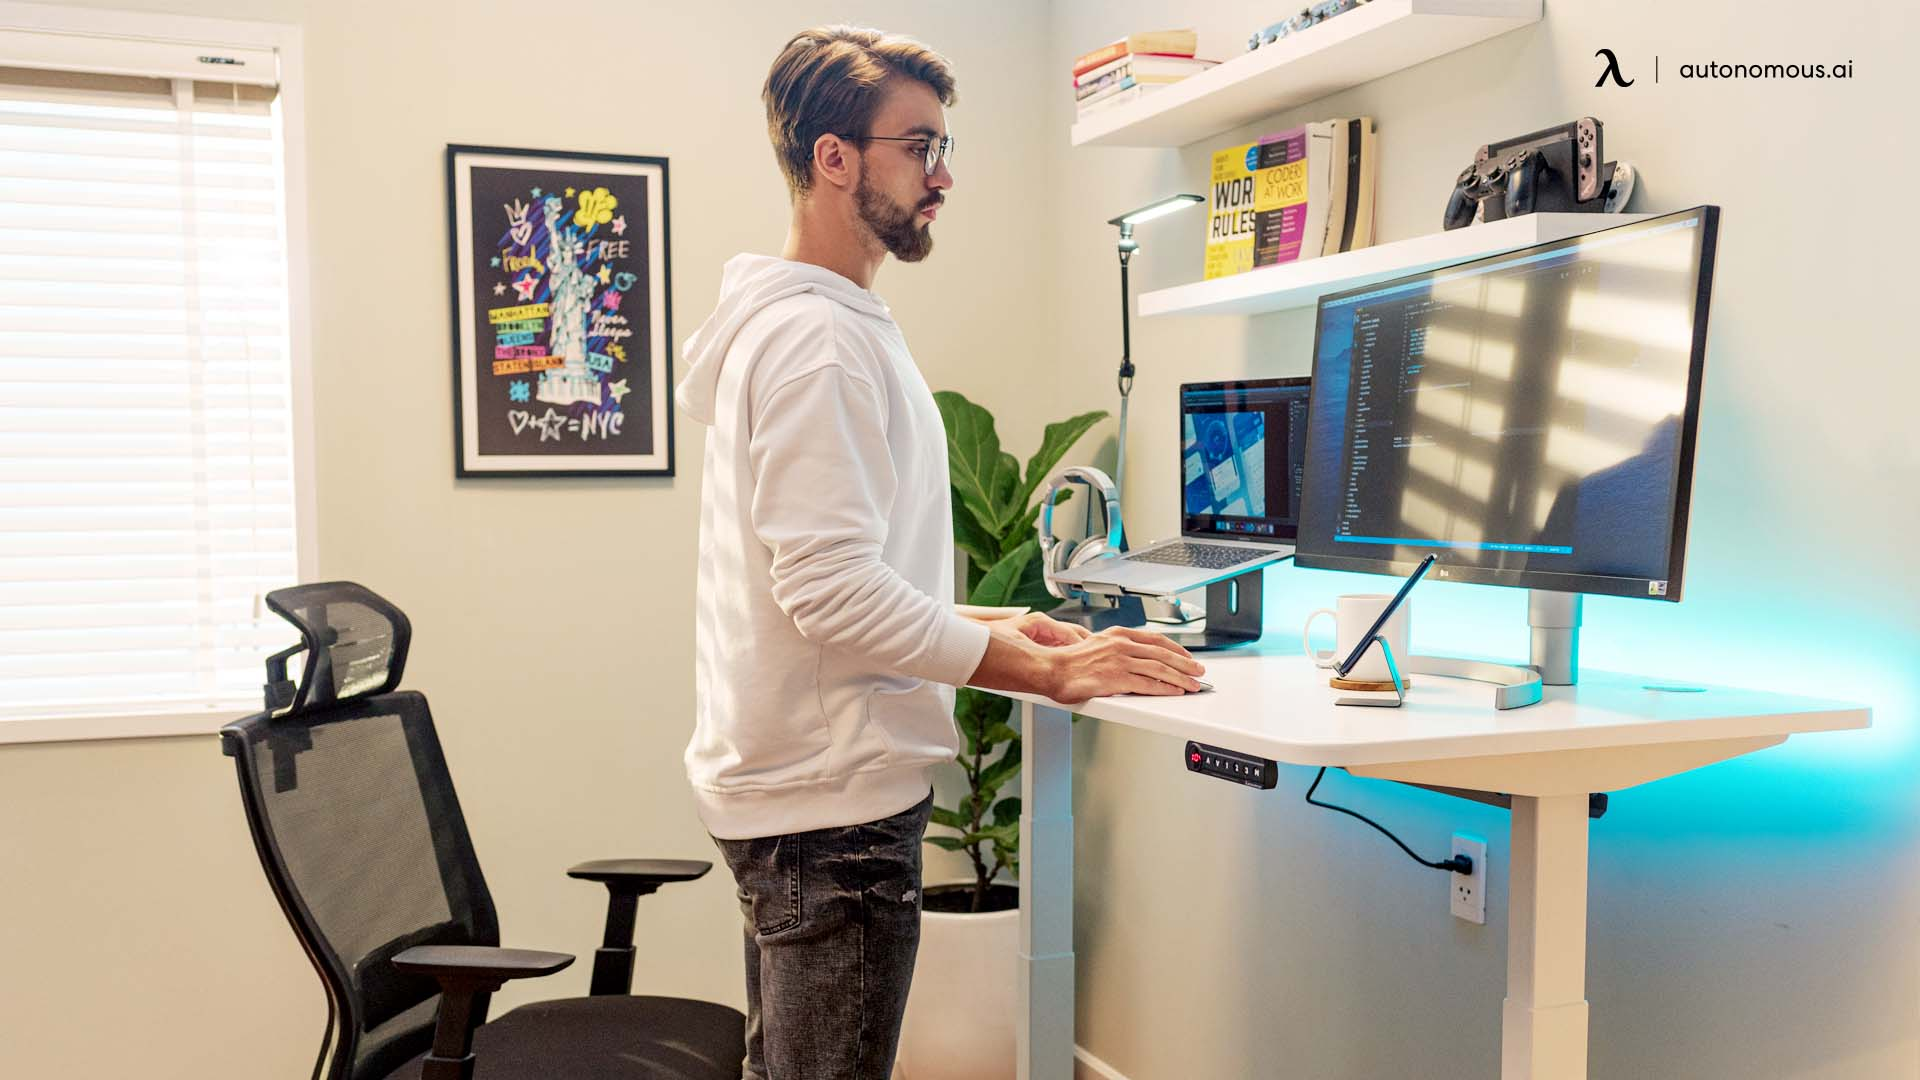 Why Use a Standing Desk?